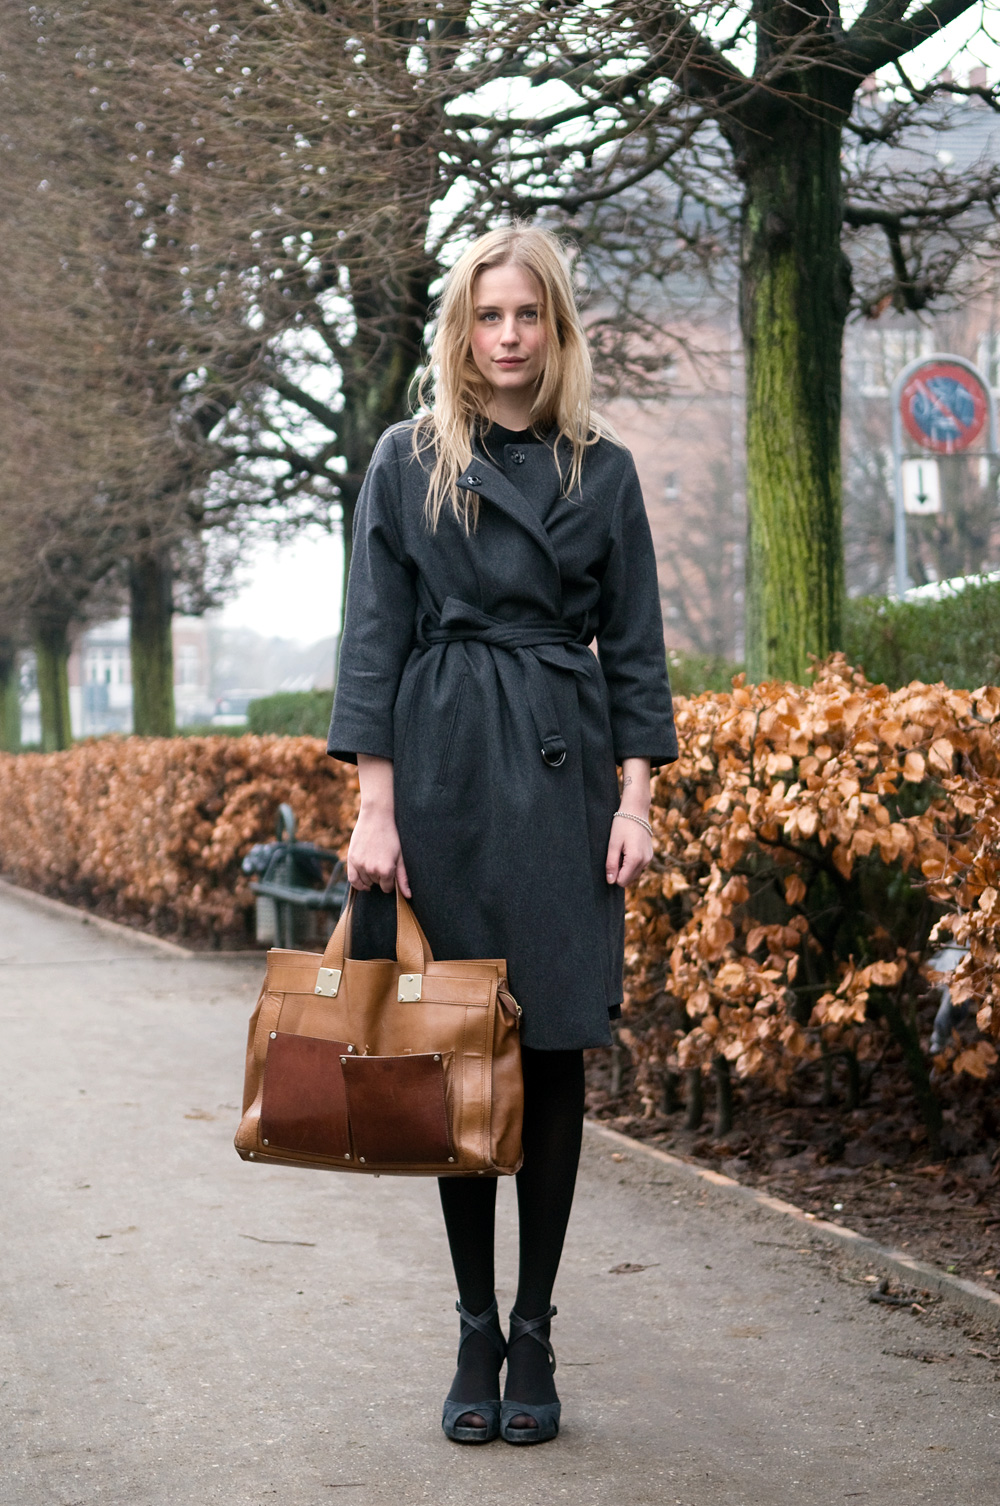 Winter Beauty The Locals Street Style From Copenhagen And Elsewhere